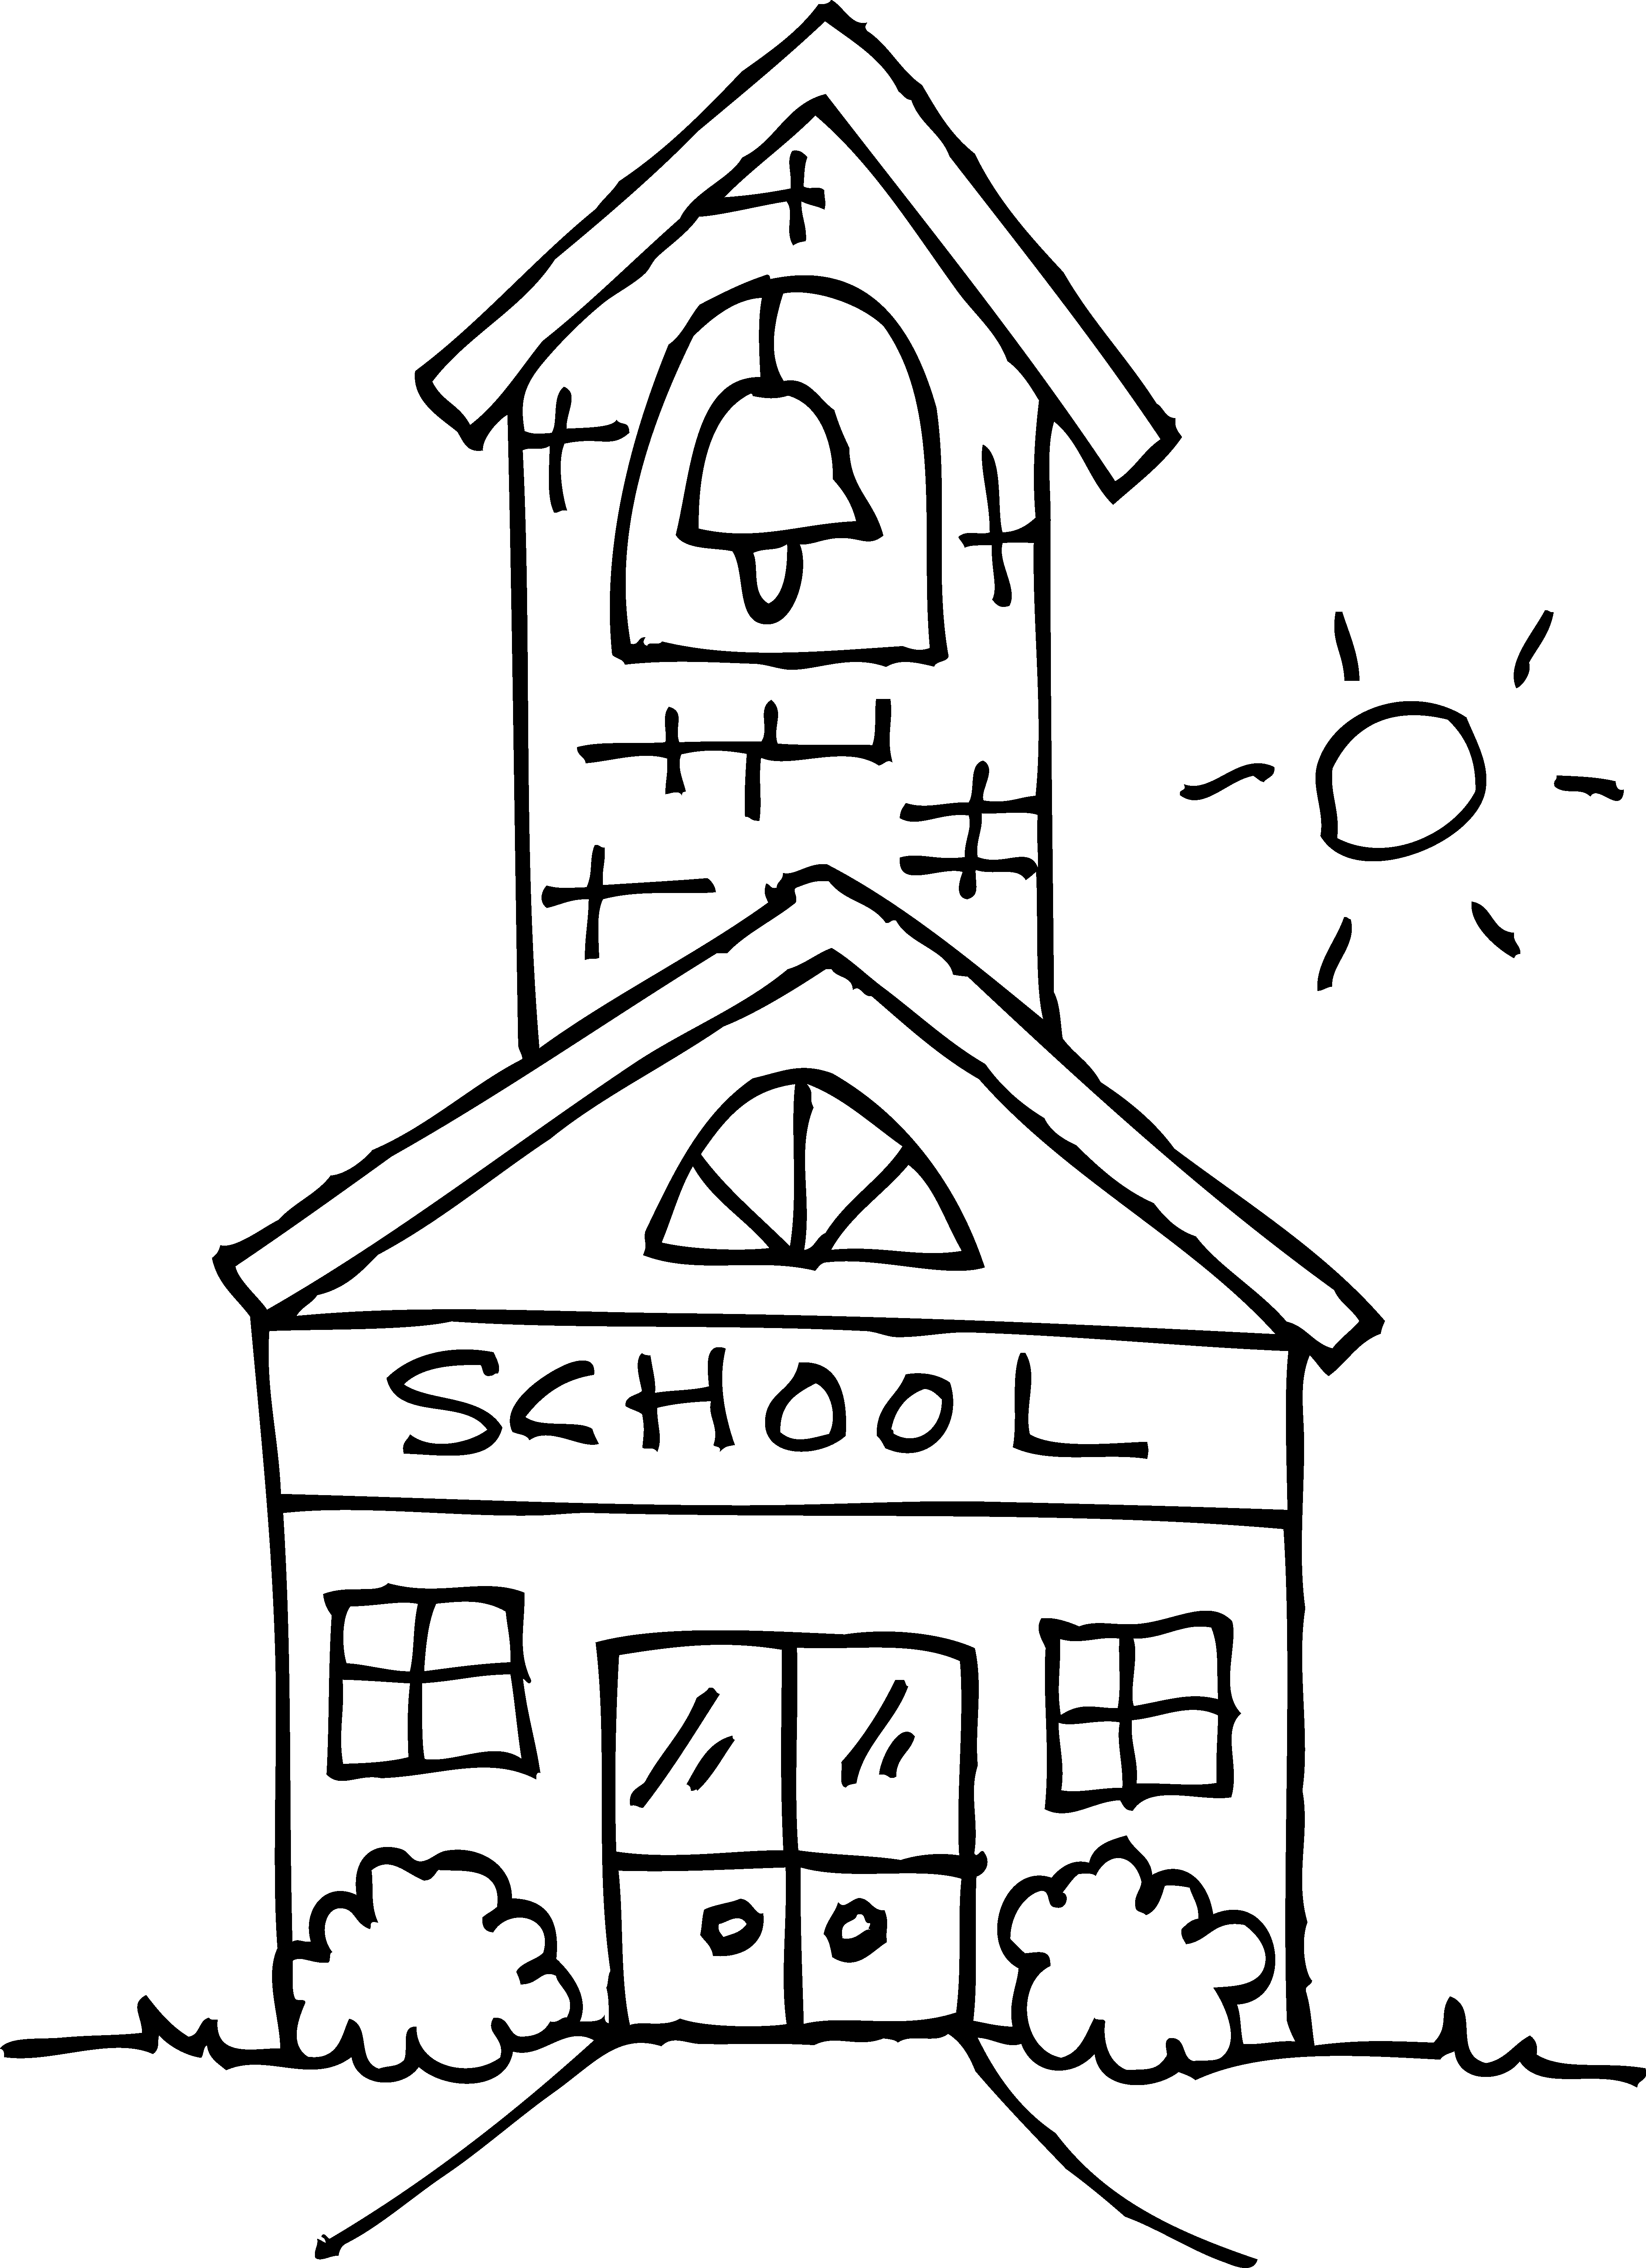 Old school house clipart.